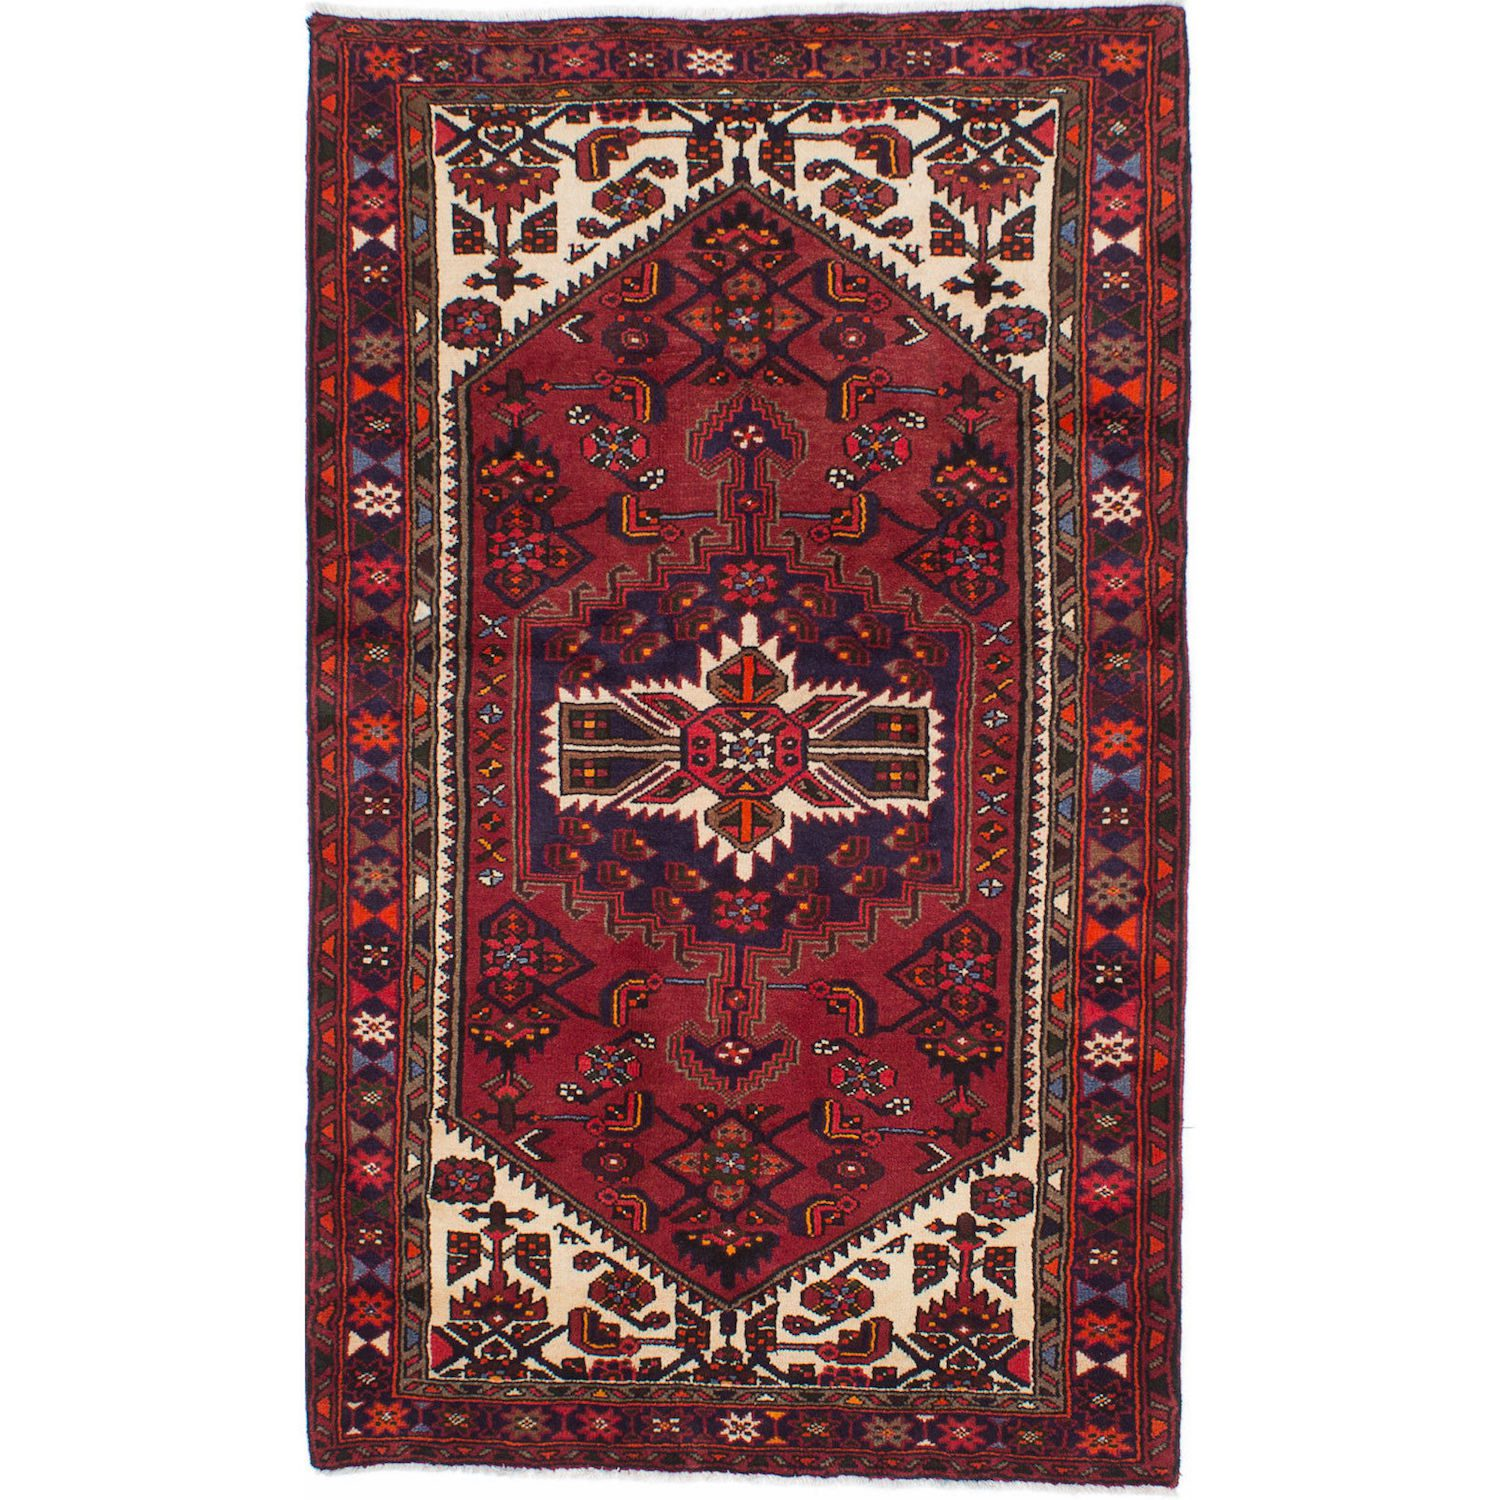 Will The Pain For Iranian Market Rugs Continue?